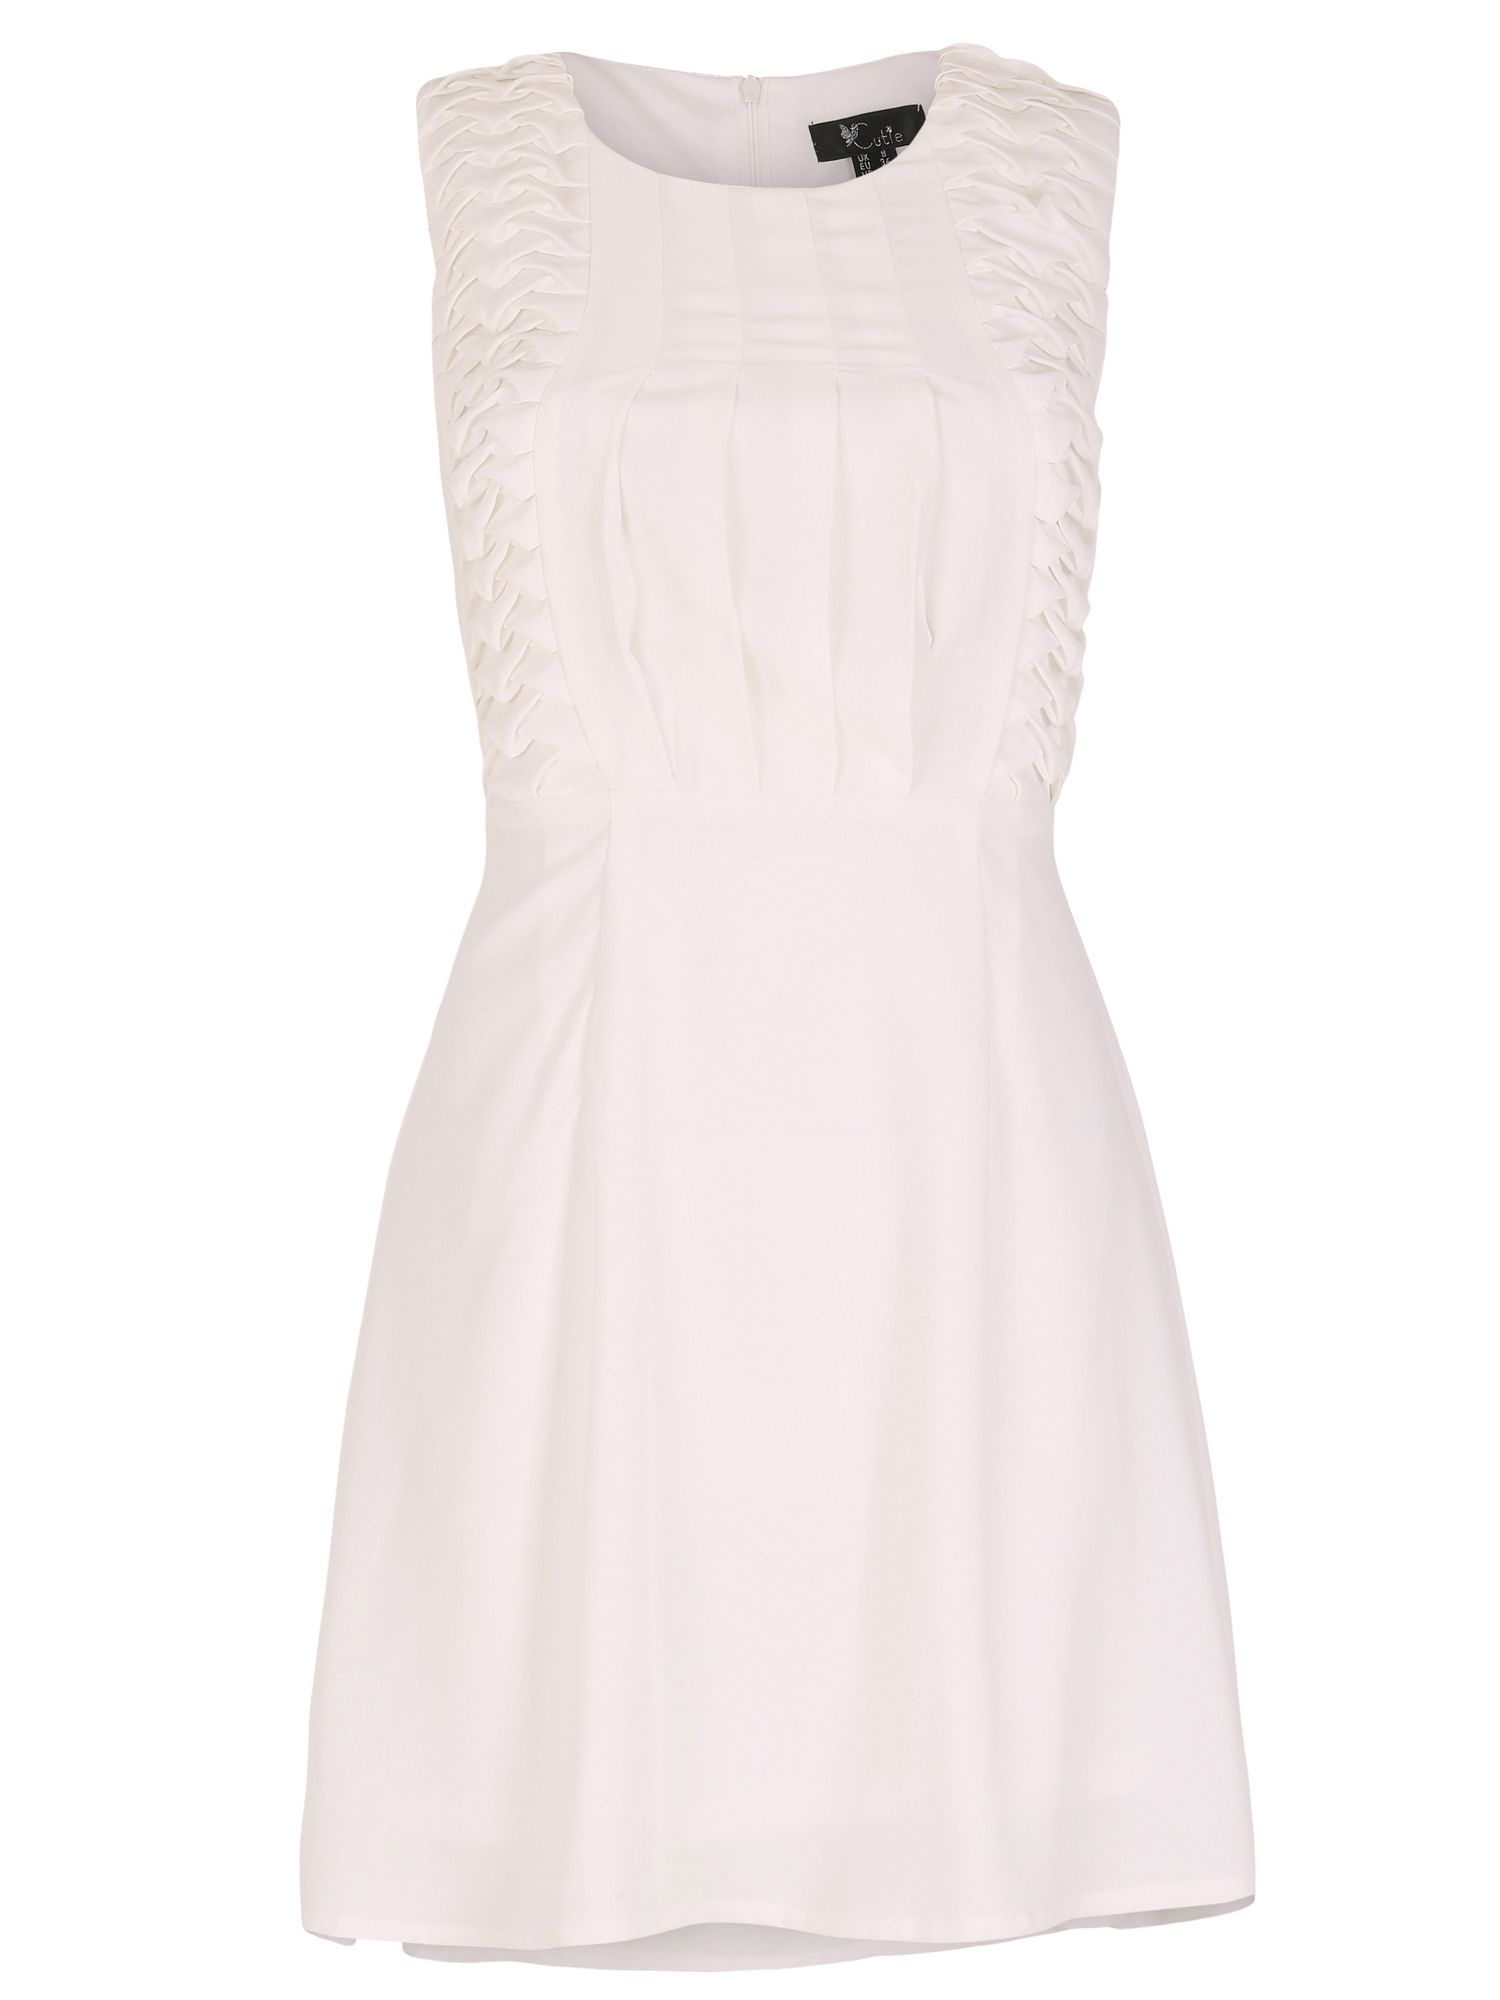 Cutie Cutie Pleated Front Dress, White